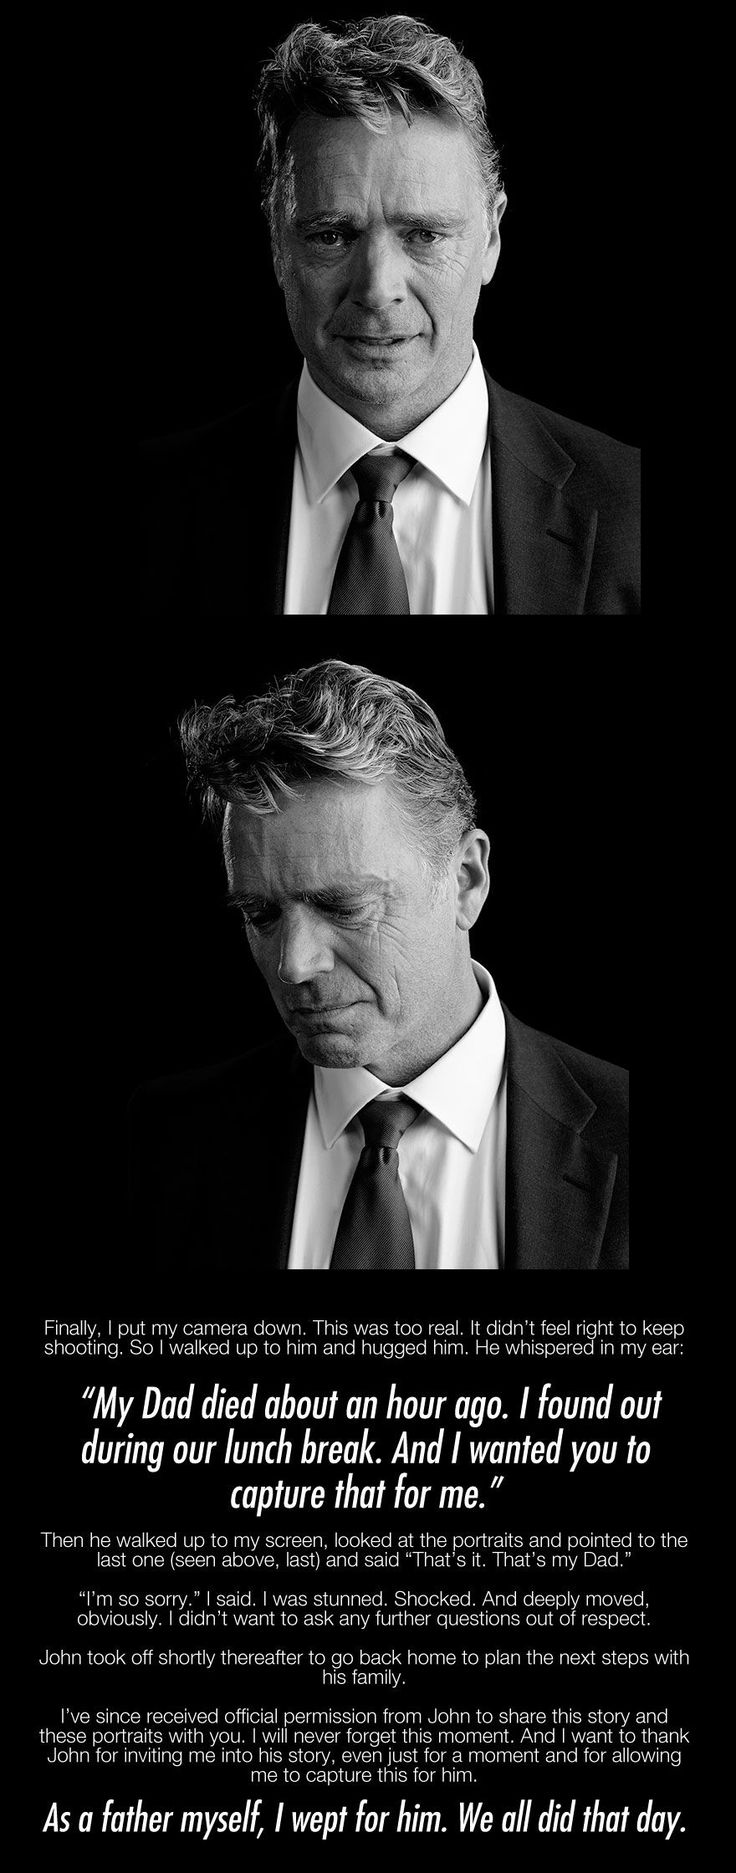 cool-photo-shoot-John-Schneider-crying-life-experience